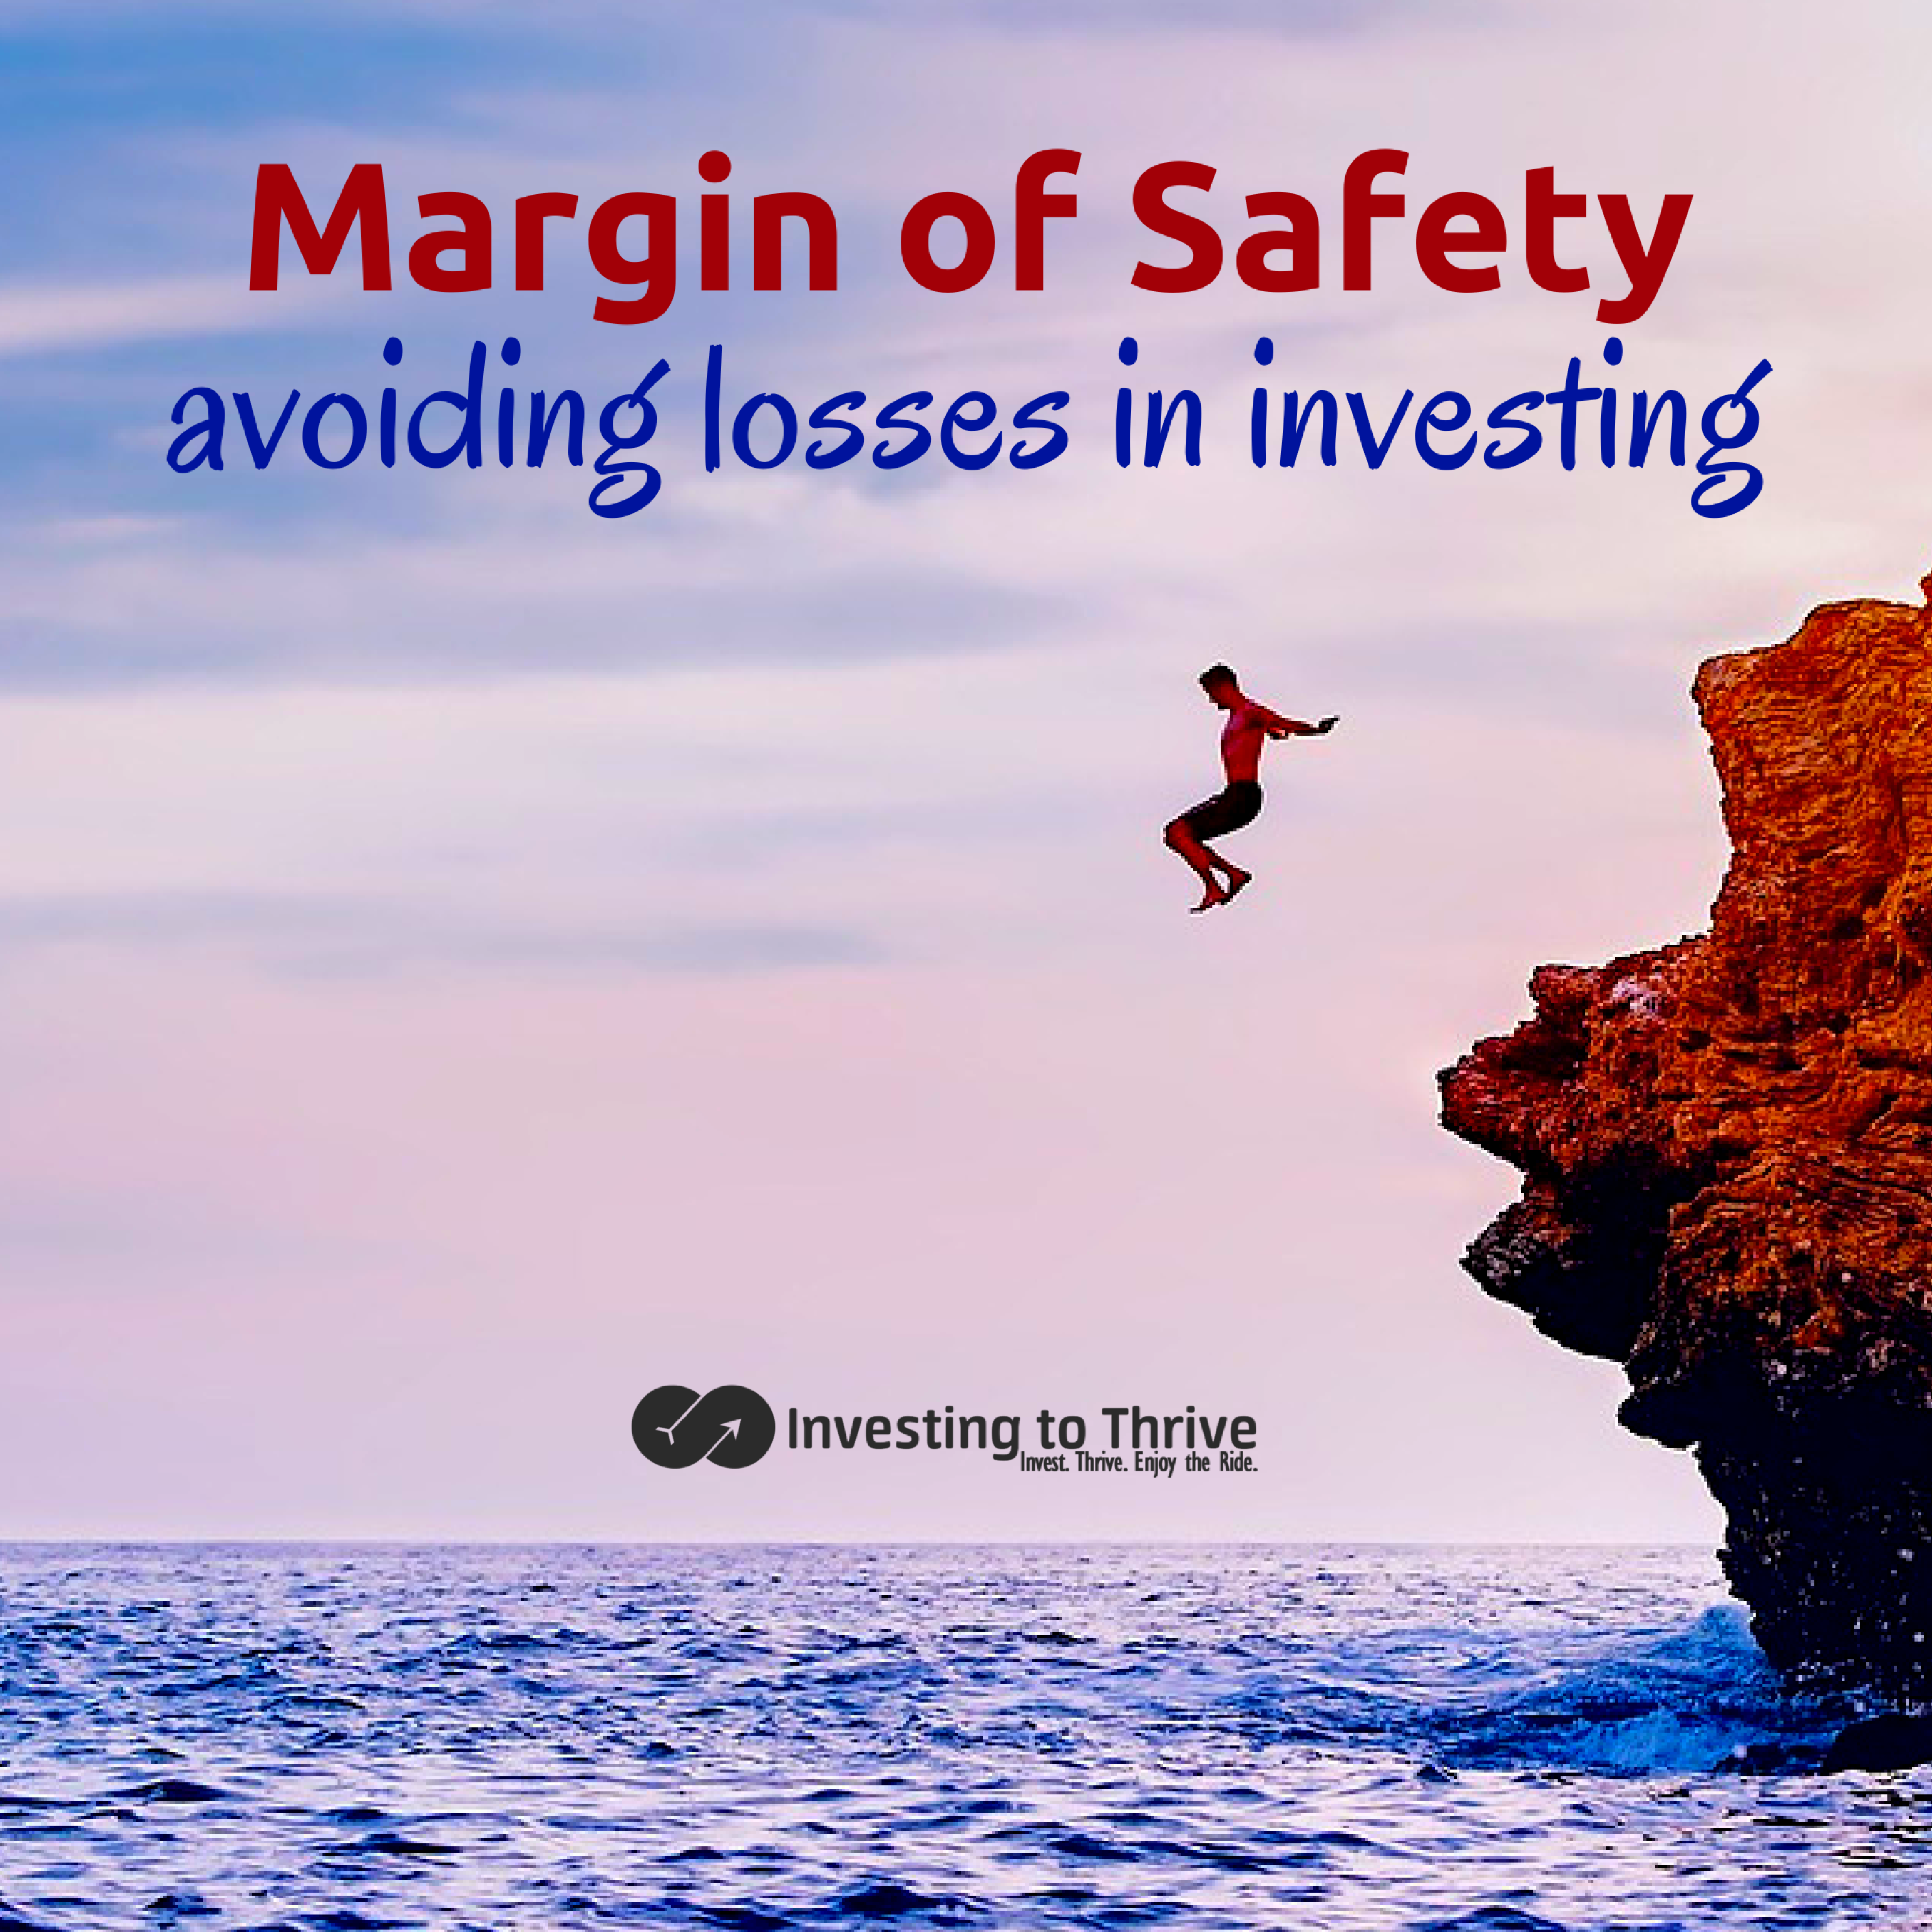 In the last chapter of The Intelligent Investor, Benjamin Graham discusses how to calculate and apply a margin of safety to investment decisions.